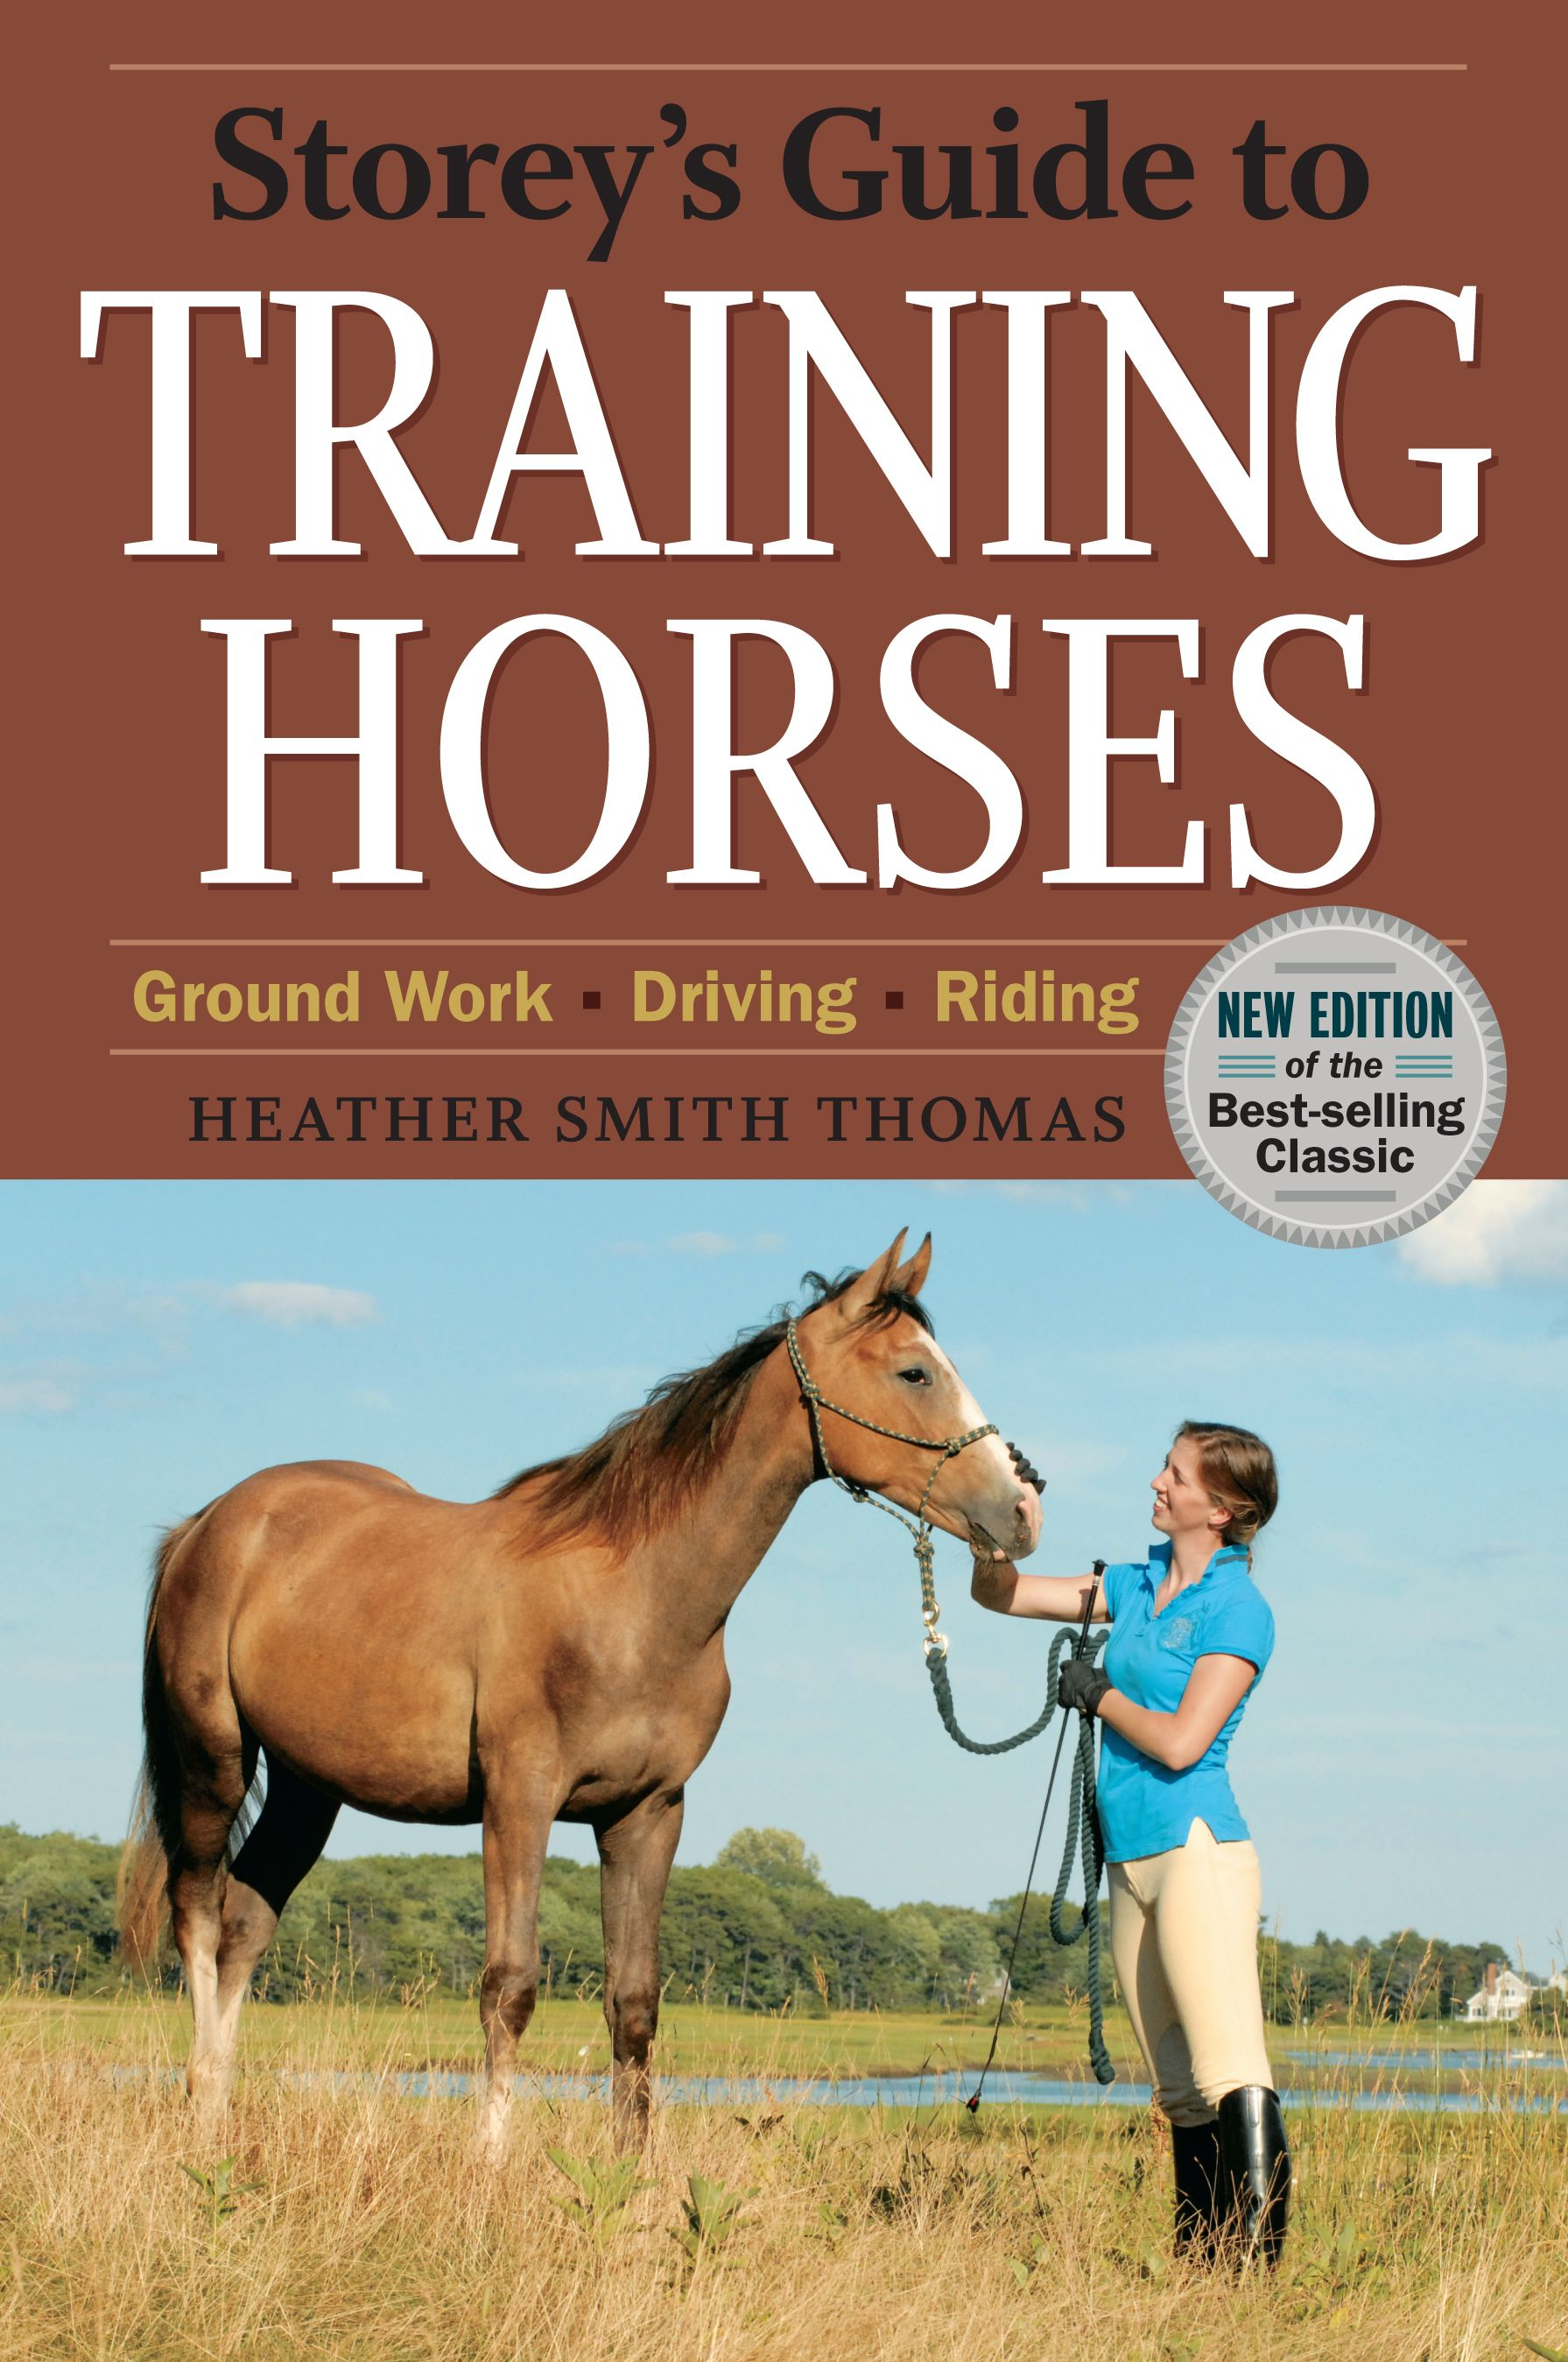 Storey's Guide to Training Horses, 2nd Edition By: Heather Smith Thomas